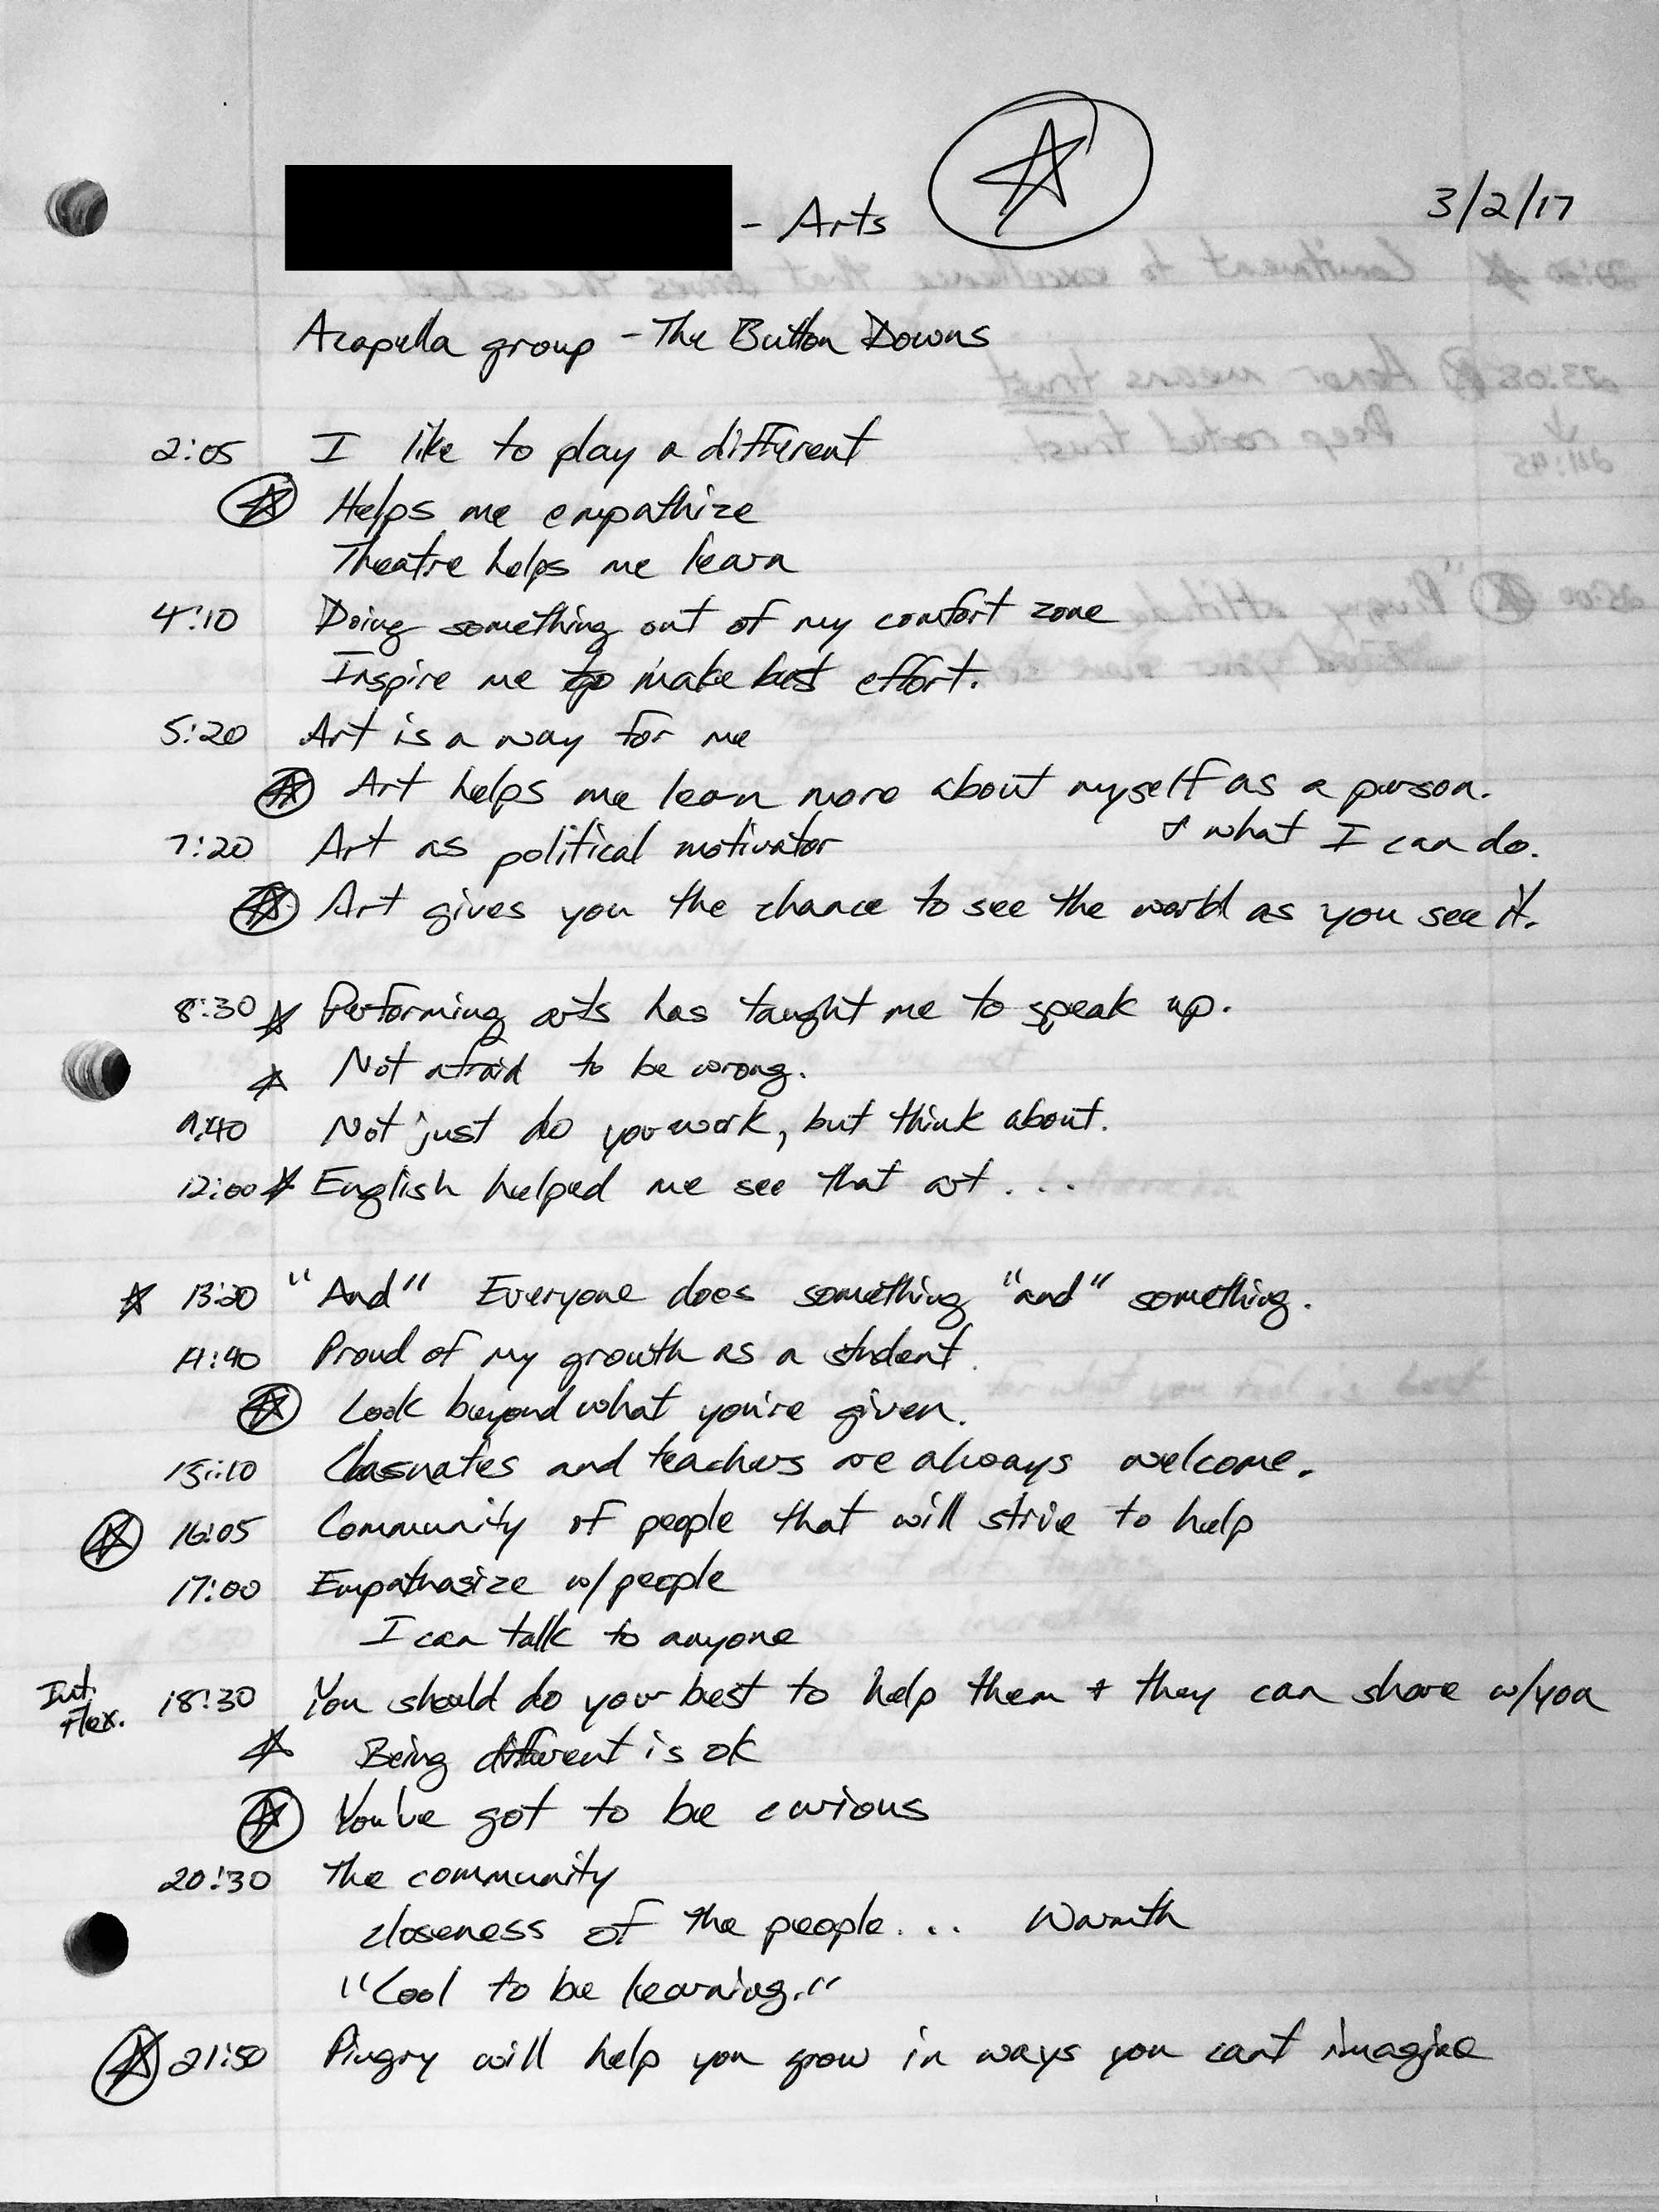 Notes from one of my student interviews that helped inform the script